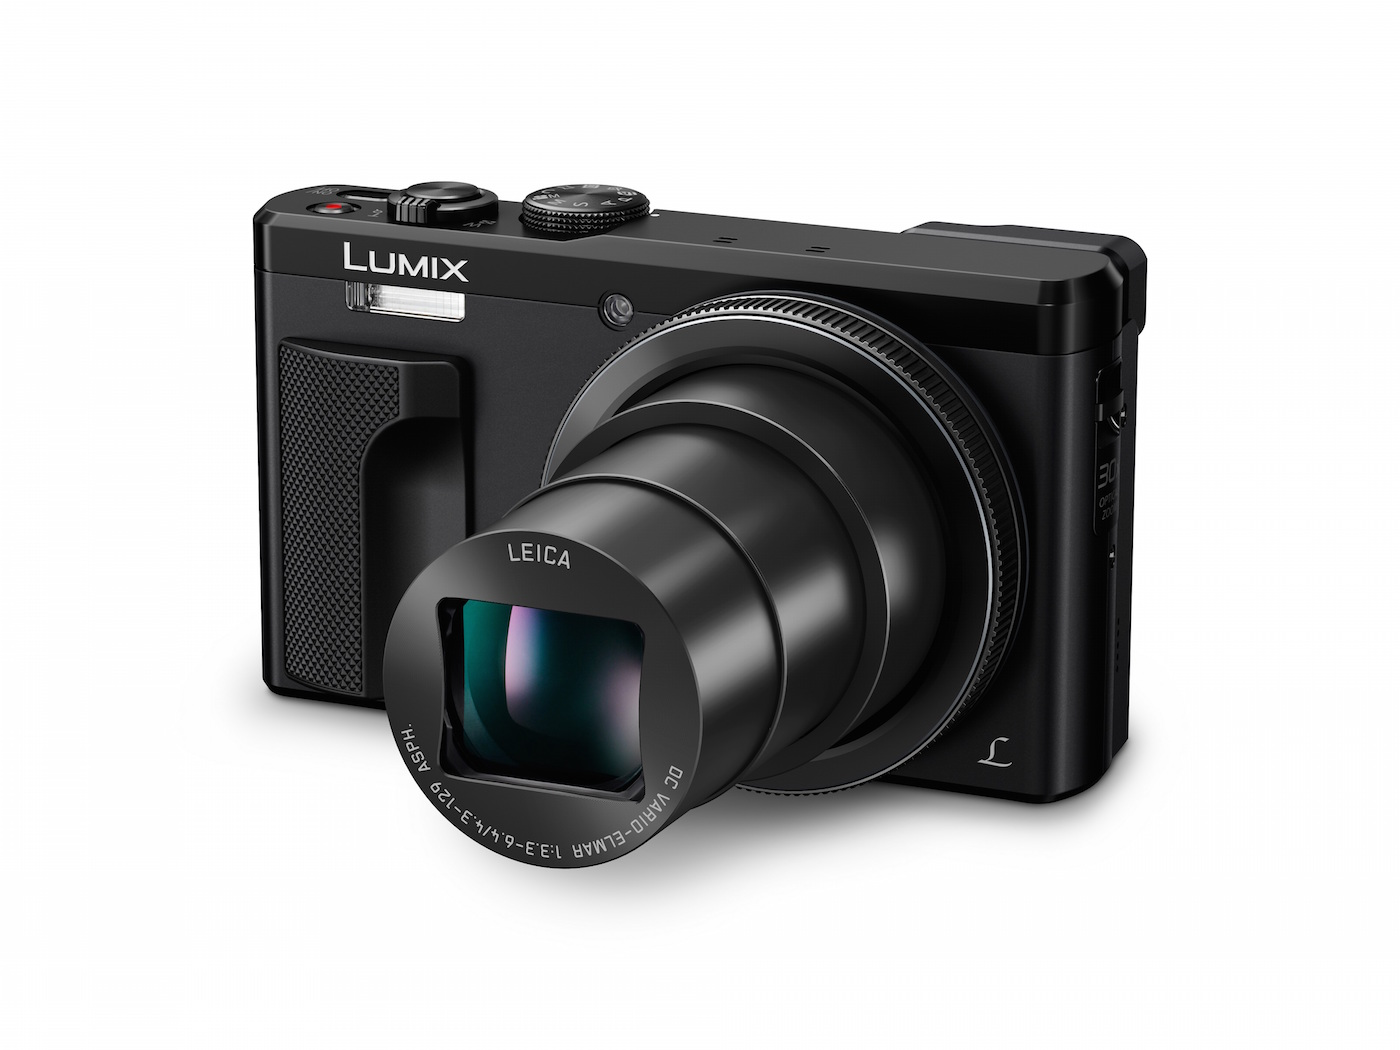 Panasonic's new compact camera features a 30x zoom and 4K